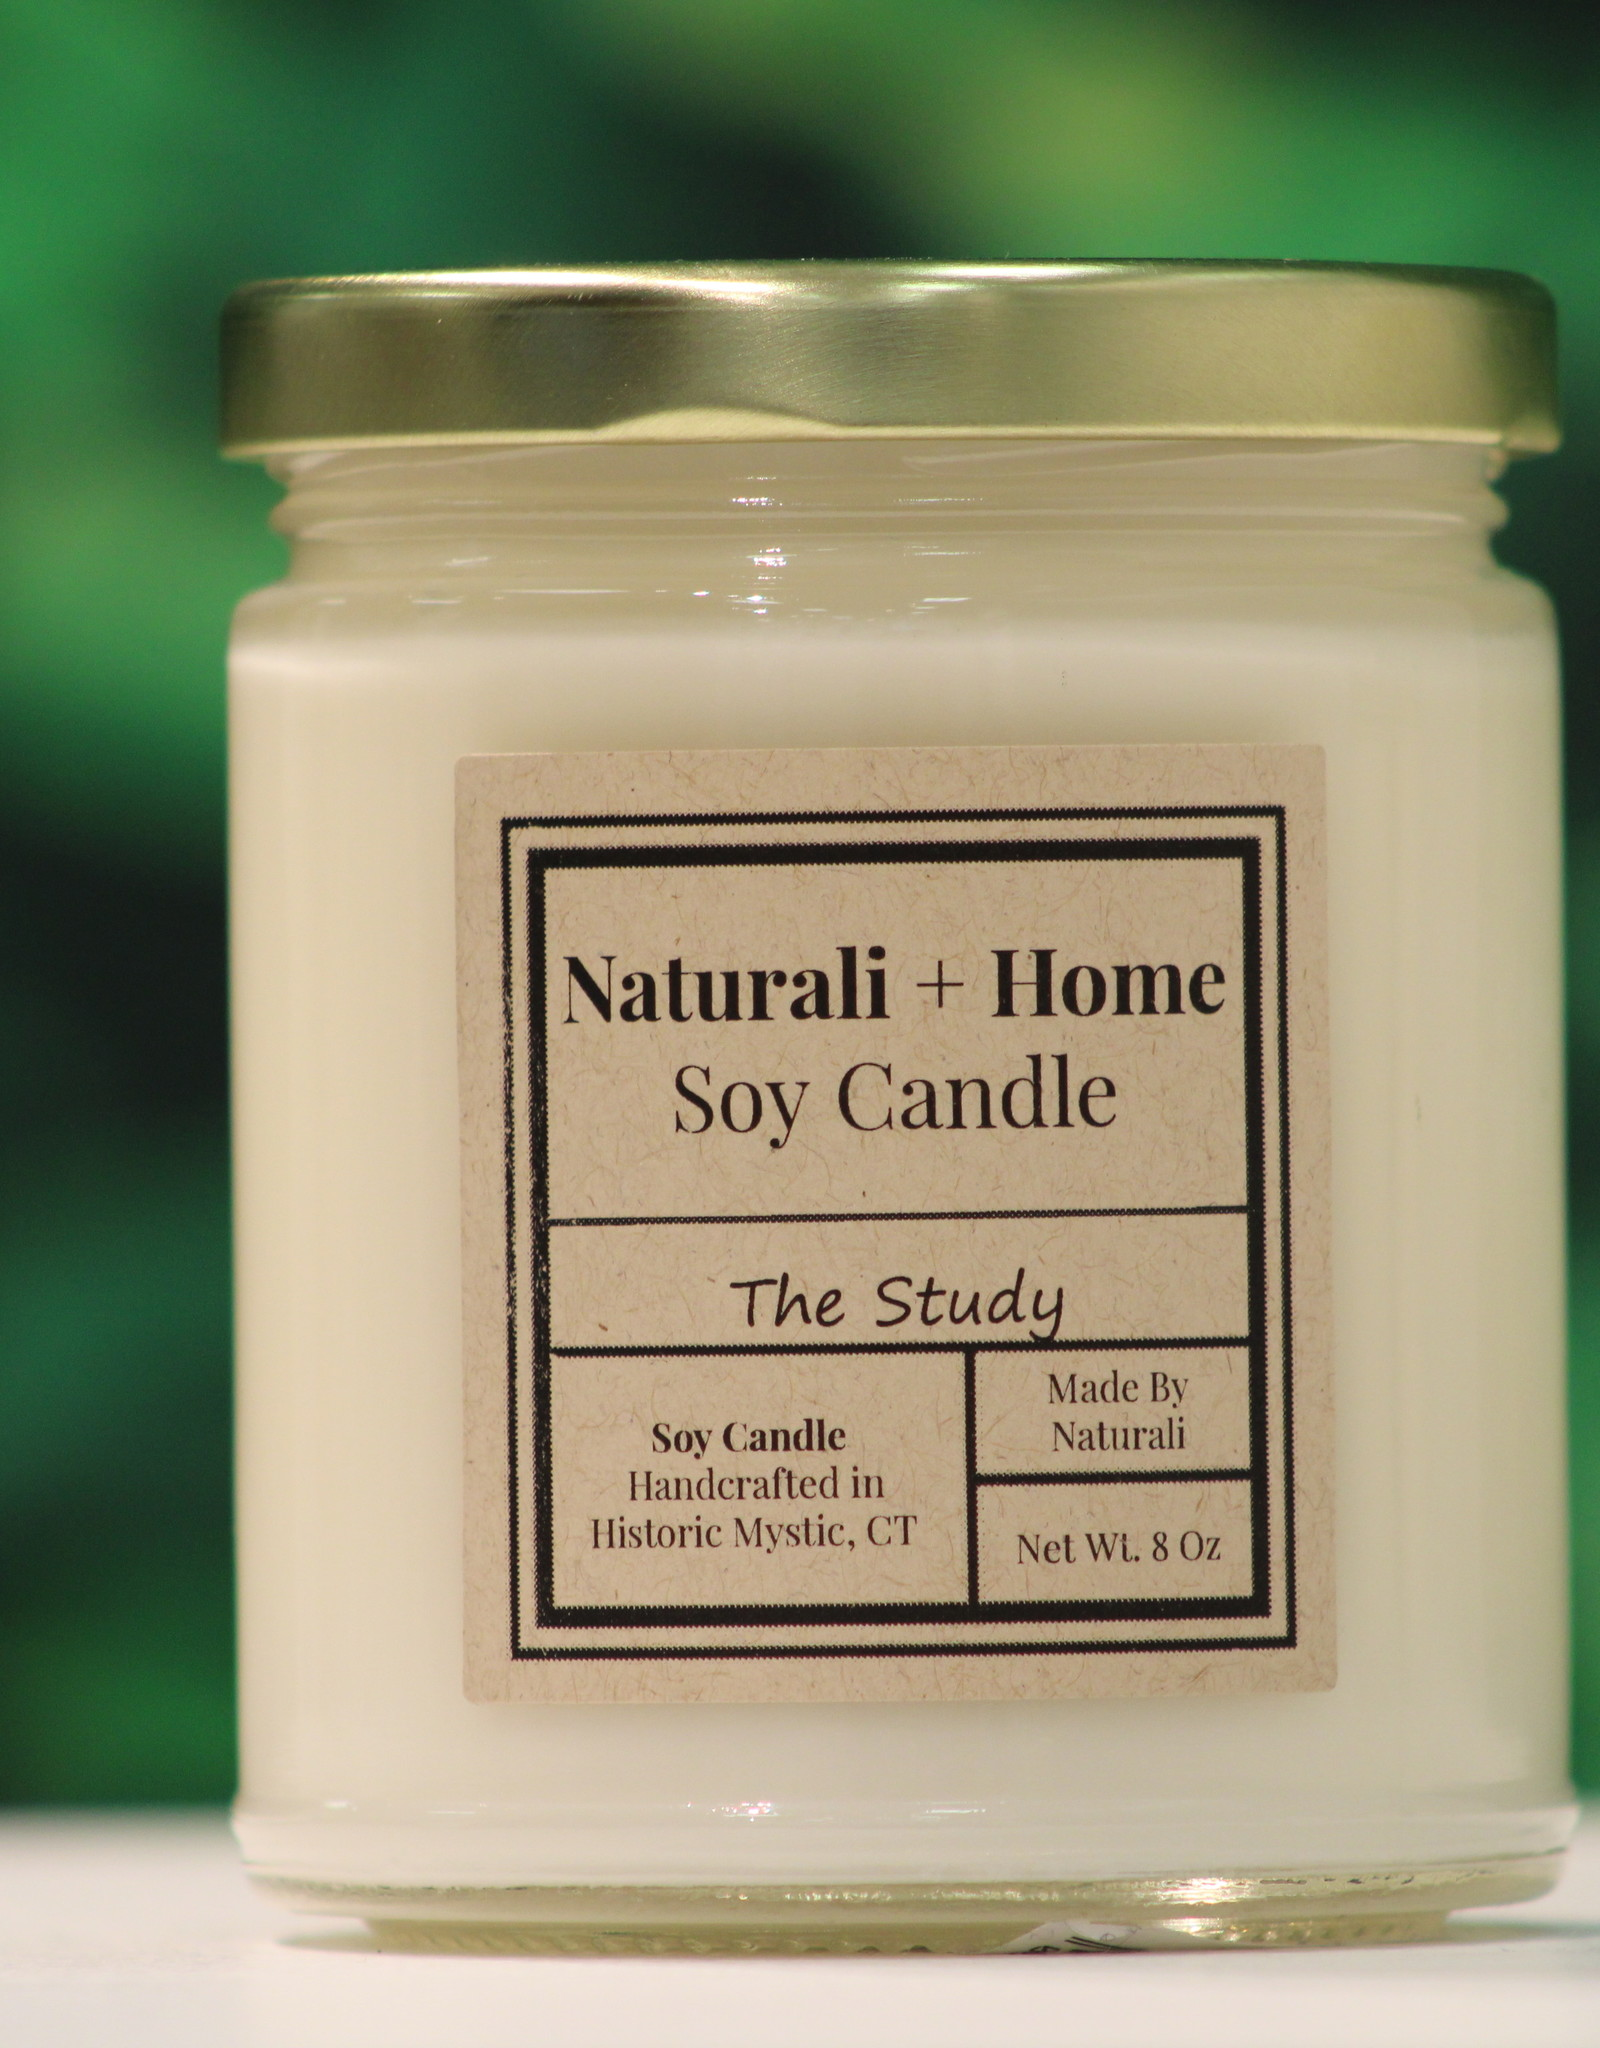 Naturali Home The Study Soy Candle (8oz)